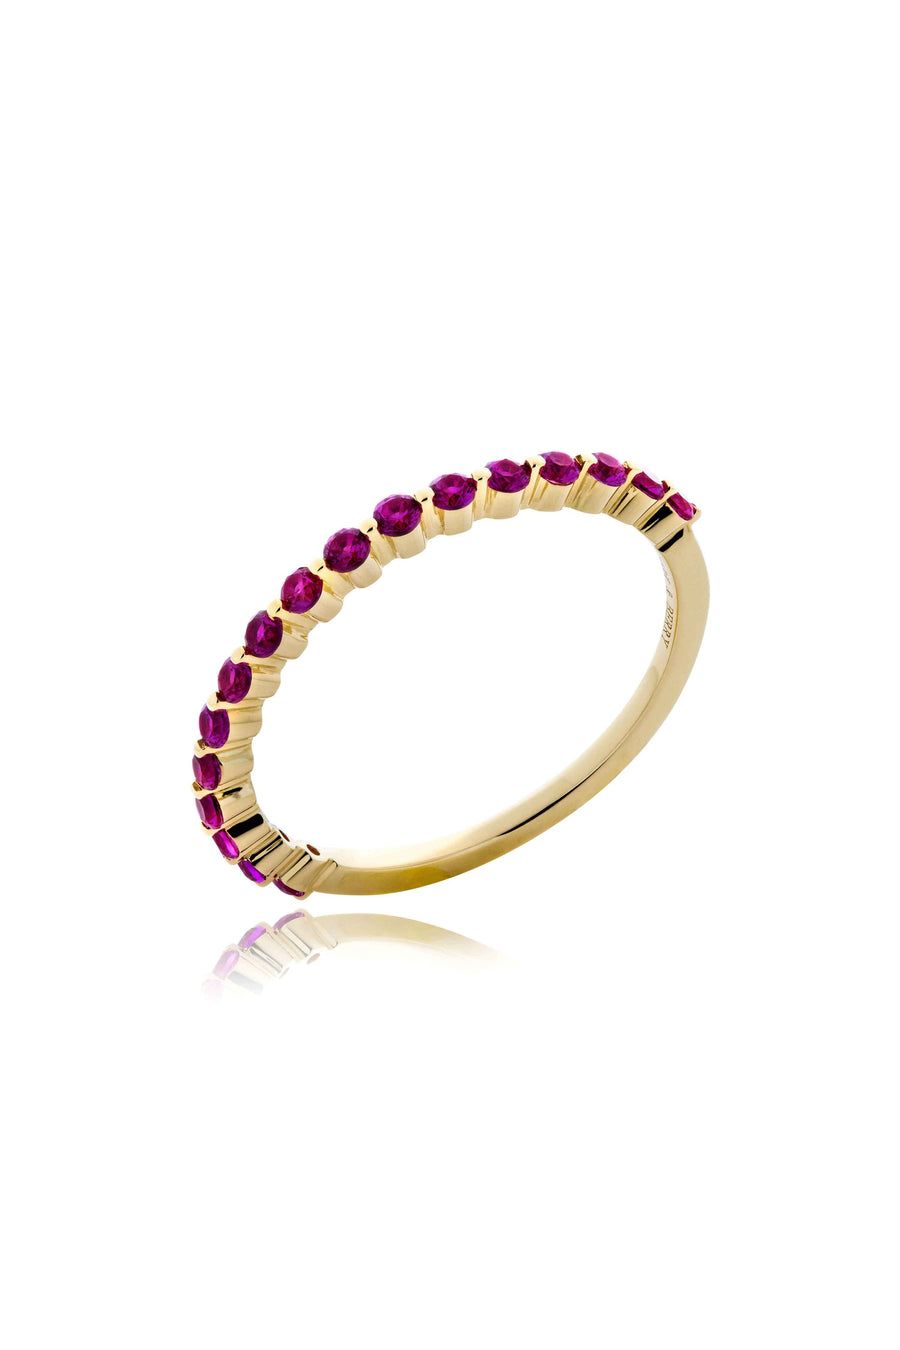 Modernist Stackable Ruby Ring in 14K Gold